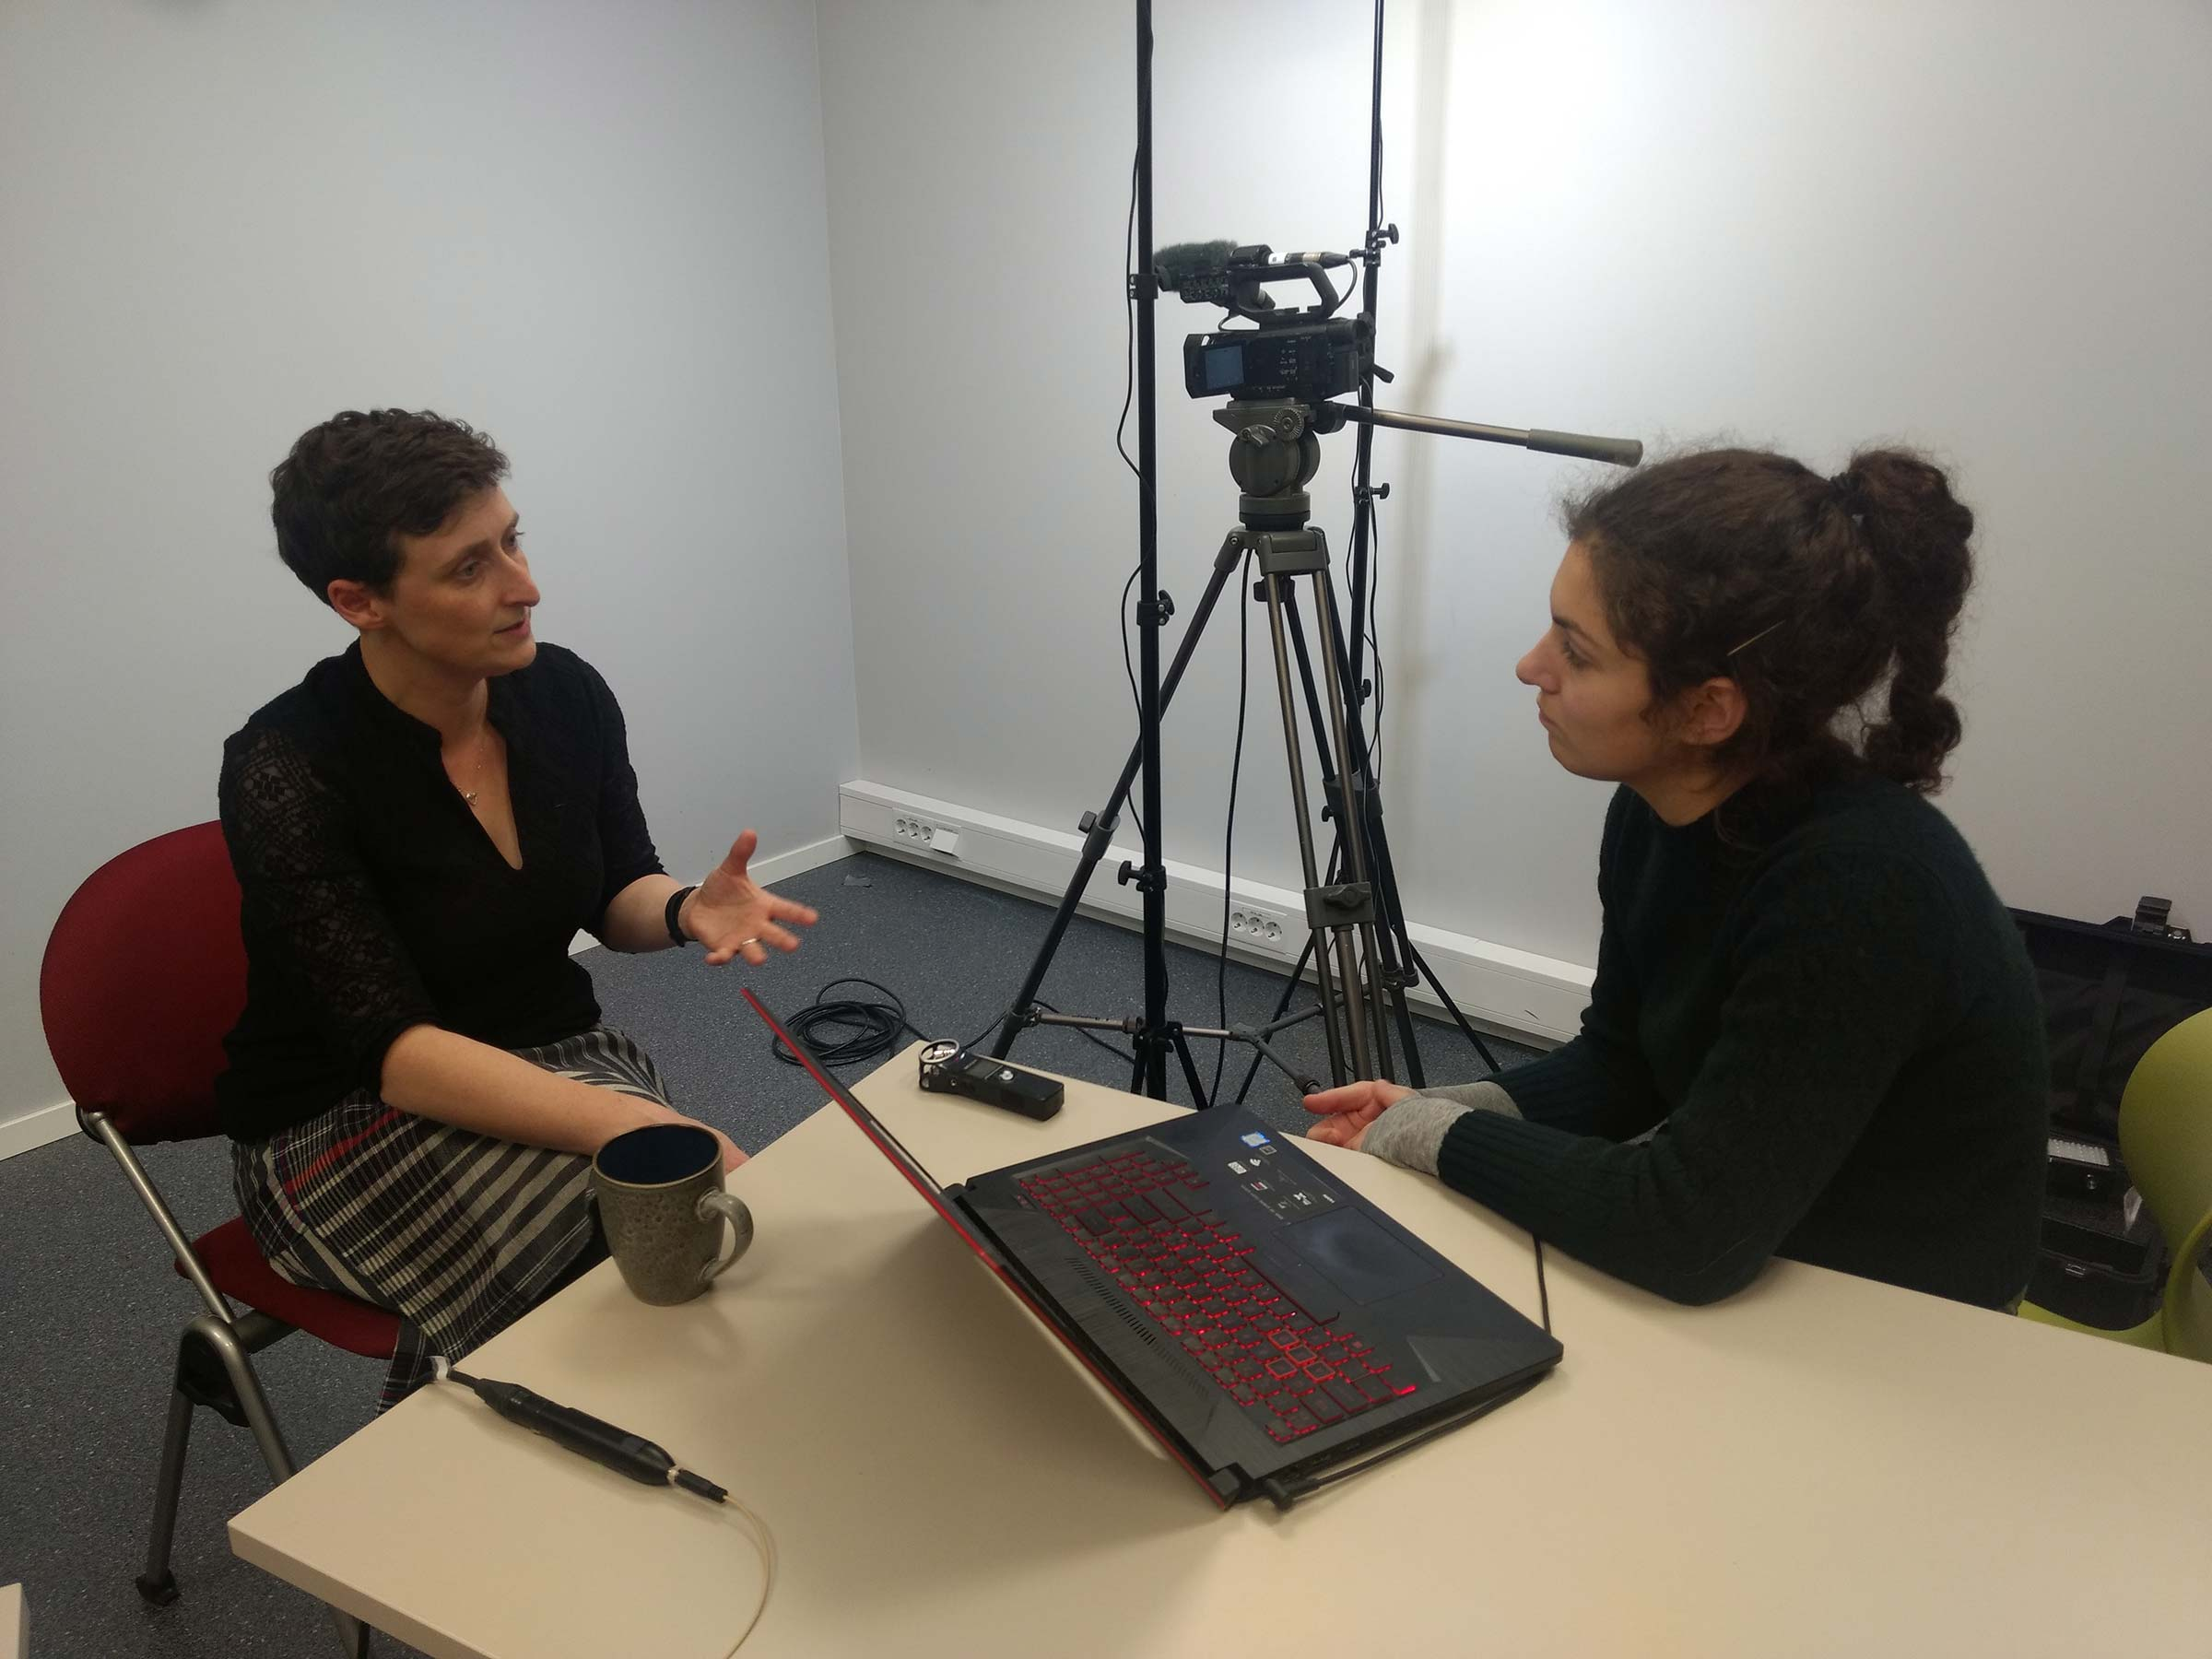 From left to right: Liz Dobson and Karolina Jawad during the interview. Photo by Anna Xambó.